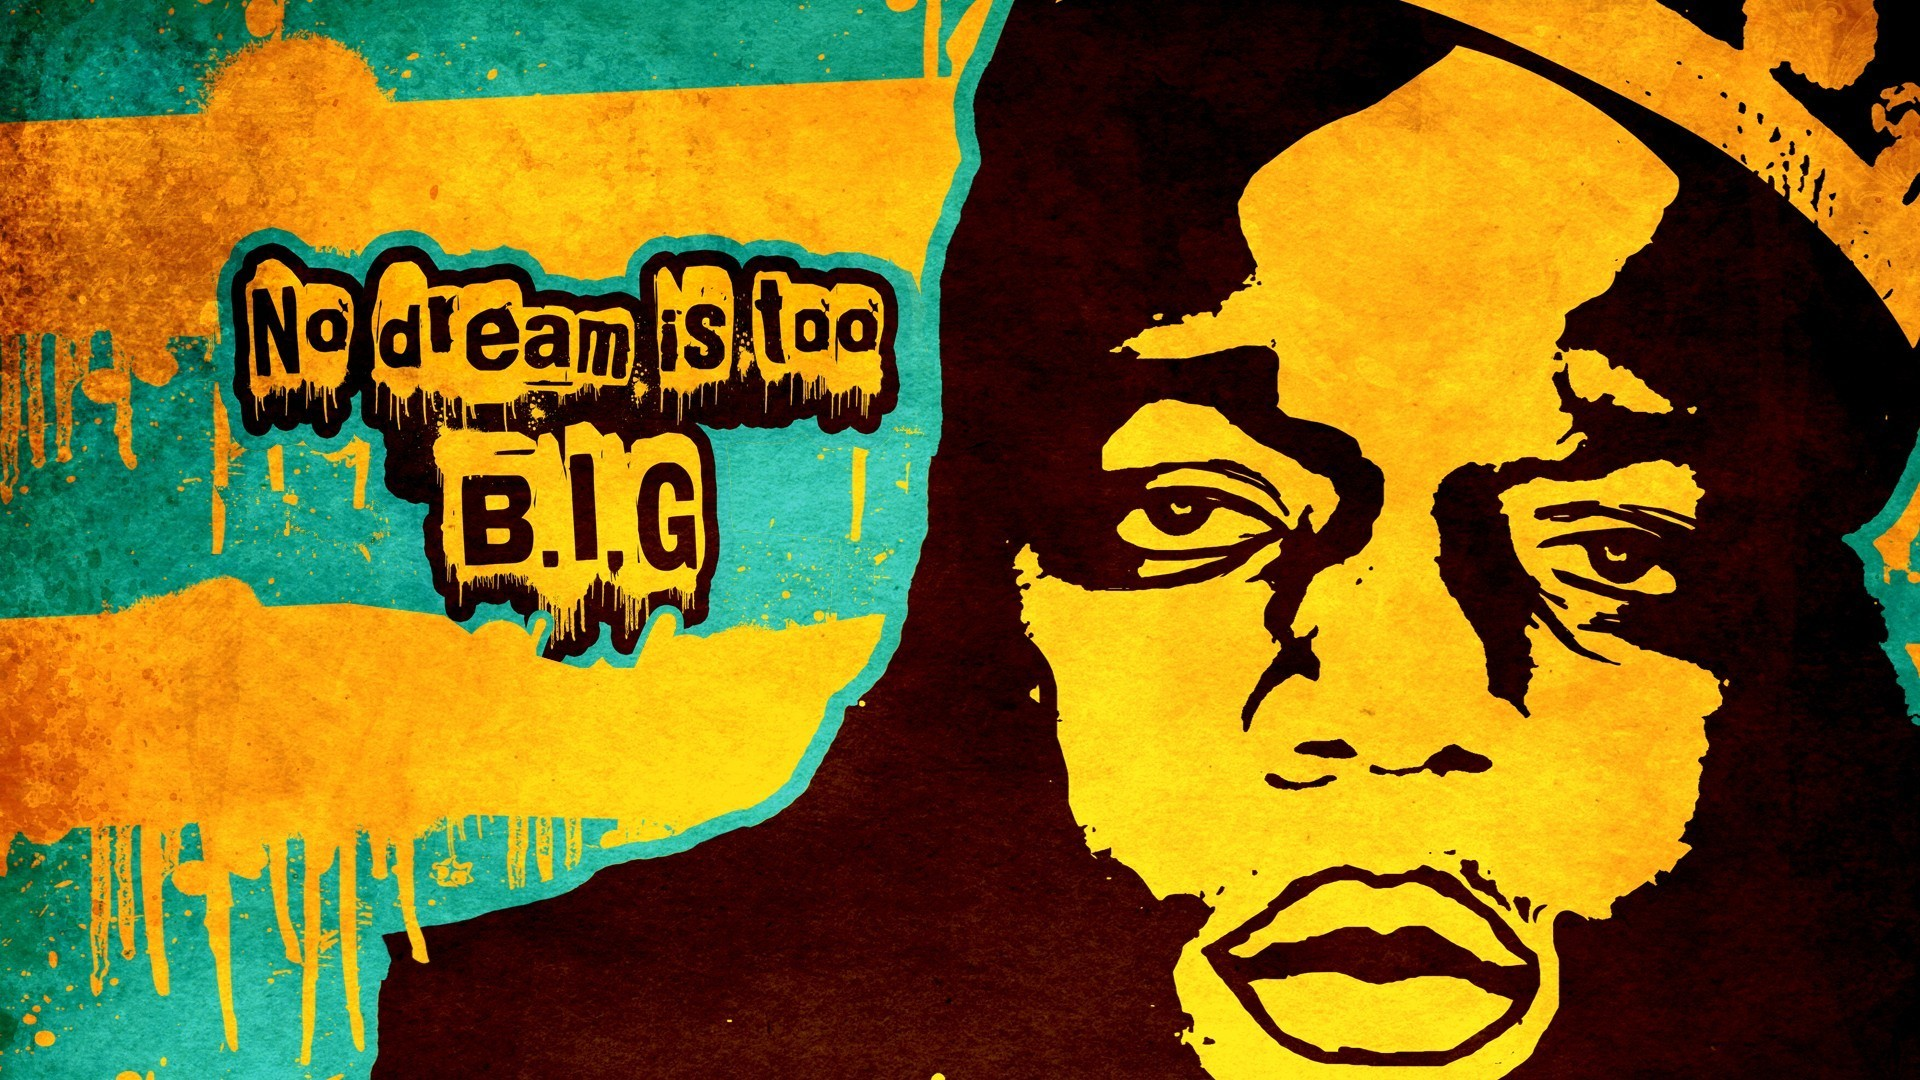 1920x1080 The Notorious B.I.G., Biggie Smalls, Christopher George Latore Wallace  Wallpaper HD